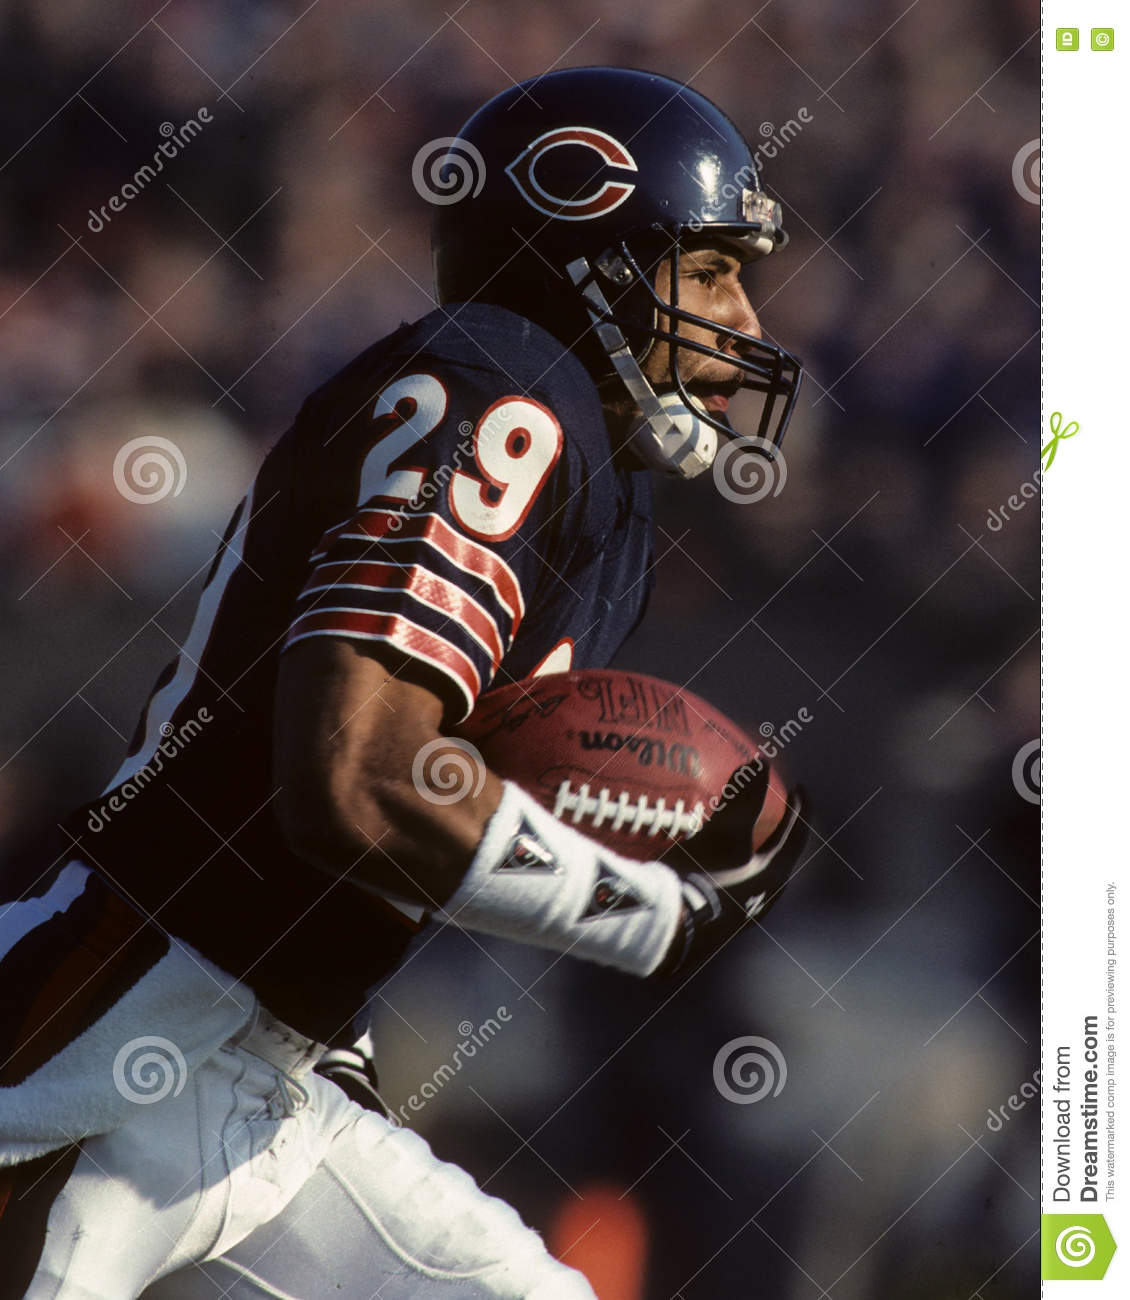 Dennis Gentry, Chicago Bears